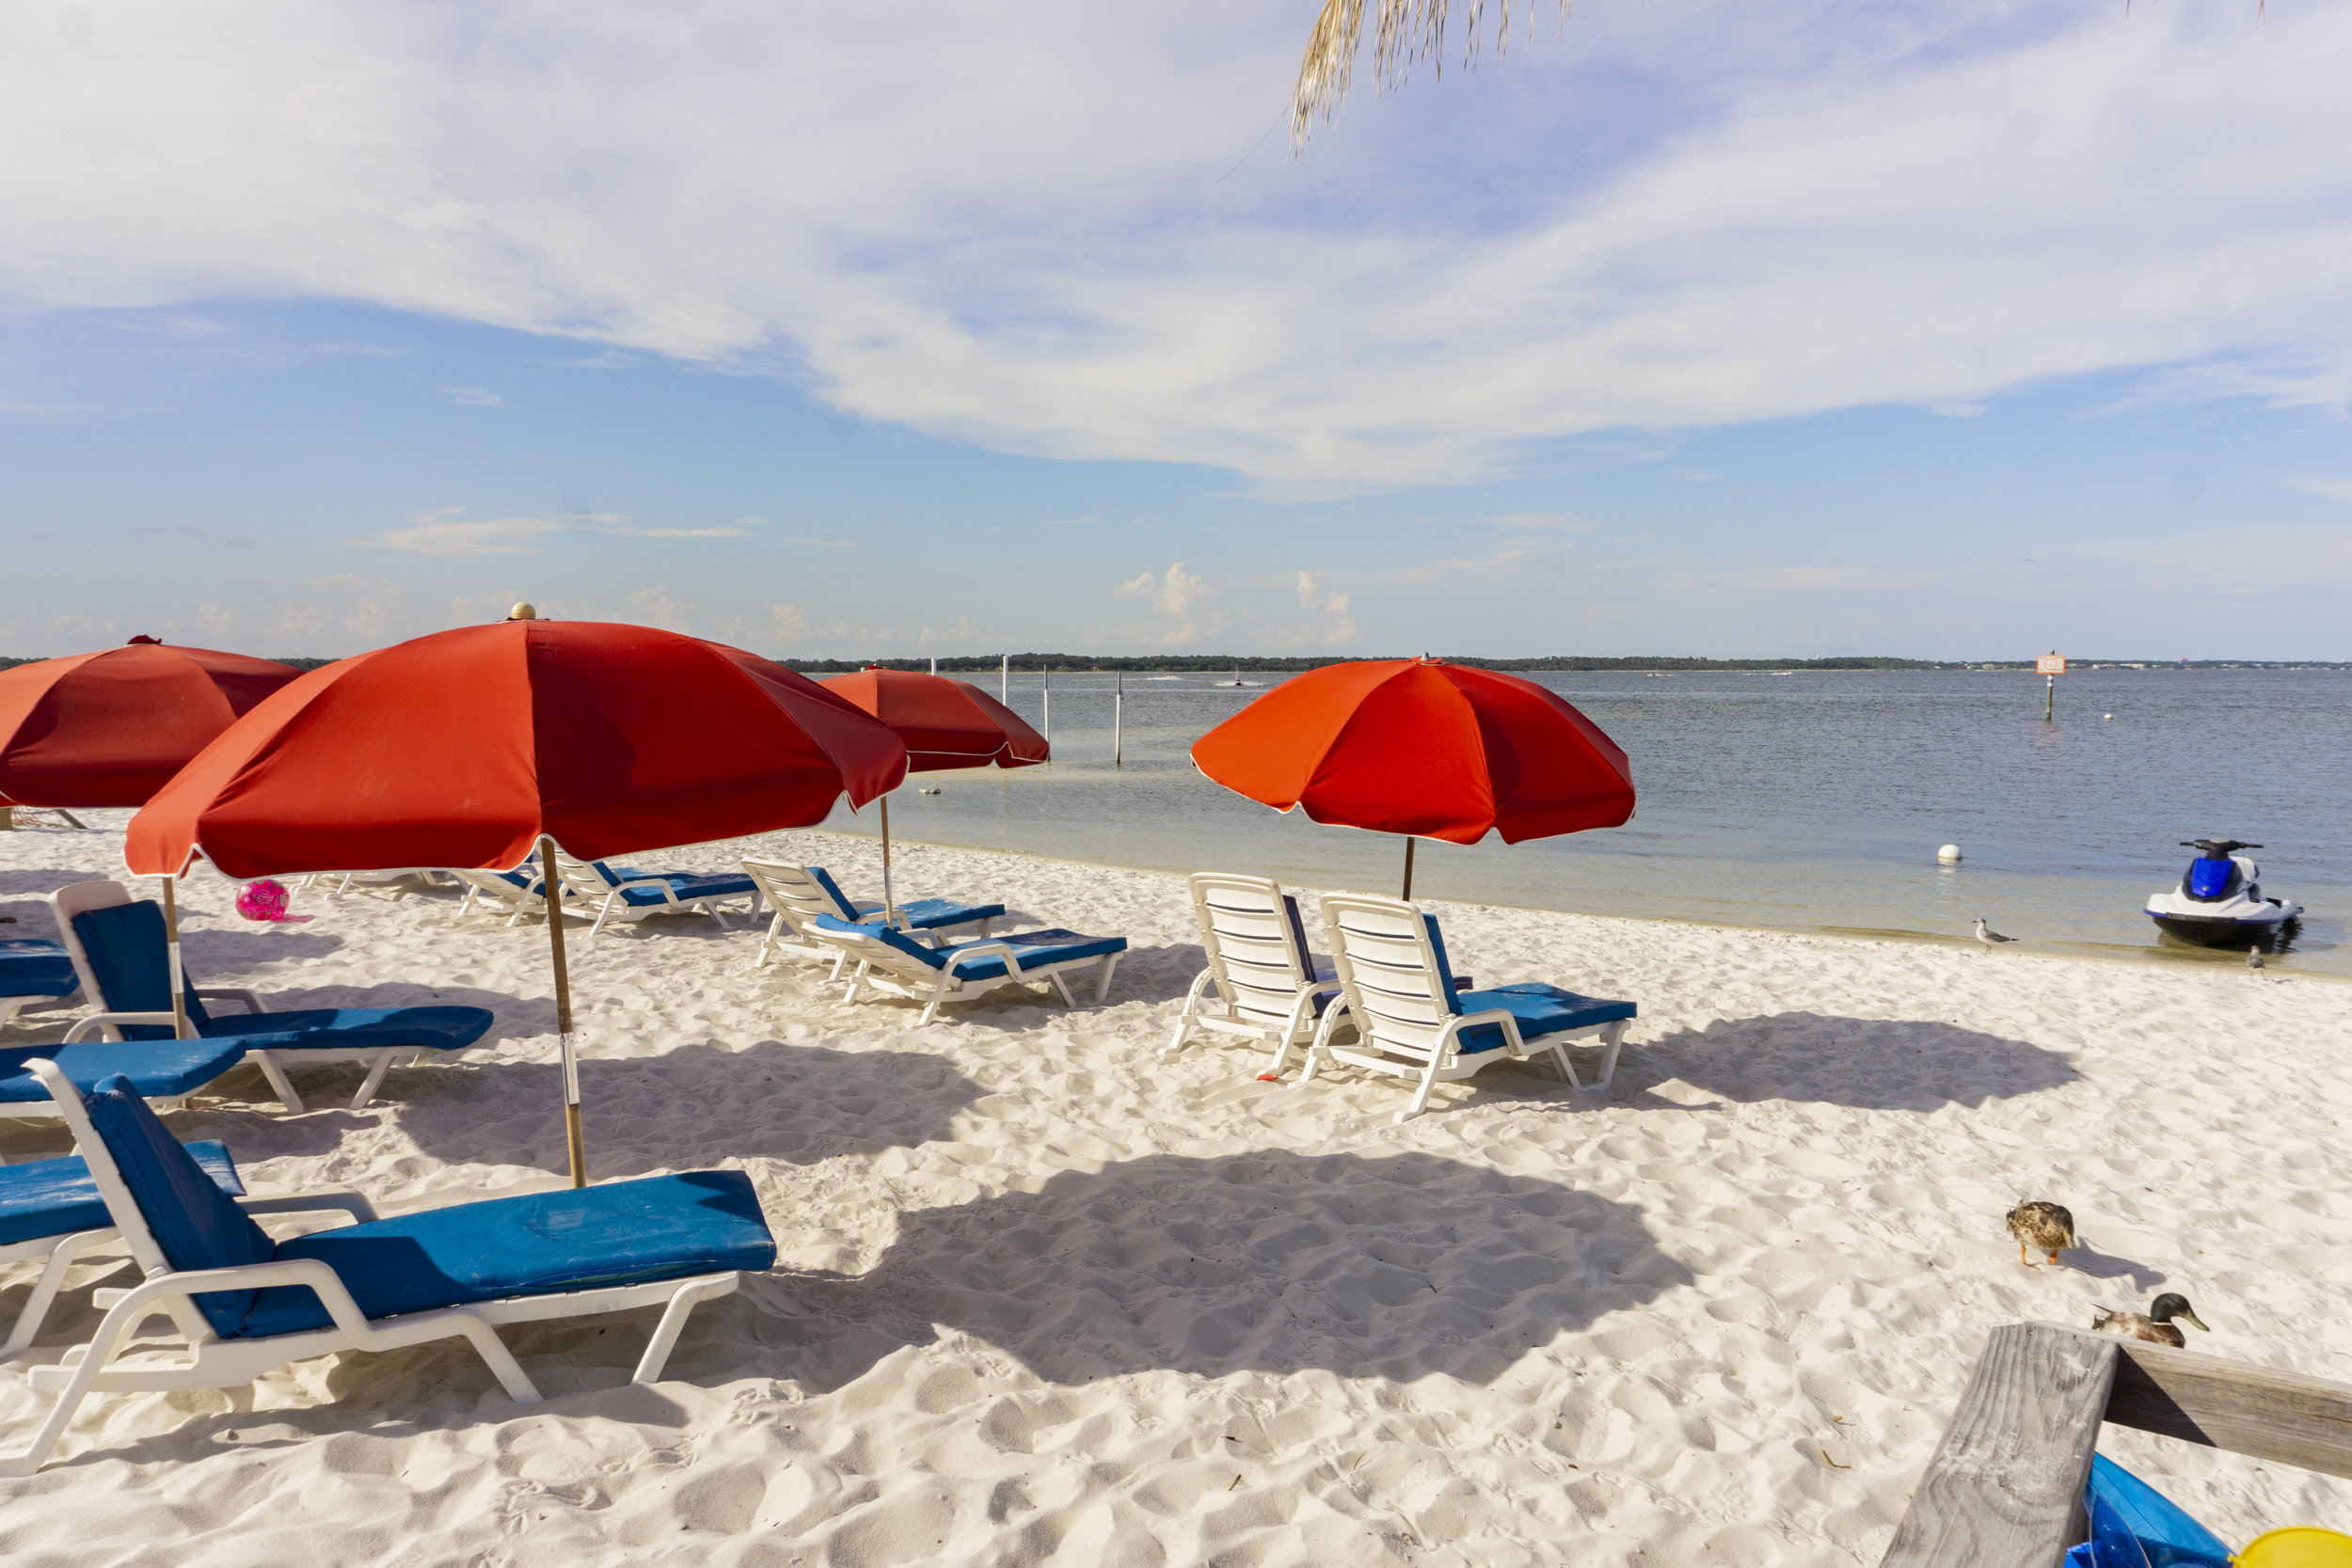 The long strips of beach are perfect for soaking in the sun and taking in the views, white sand between your toes and all.